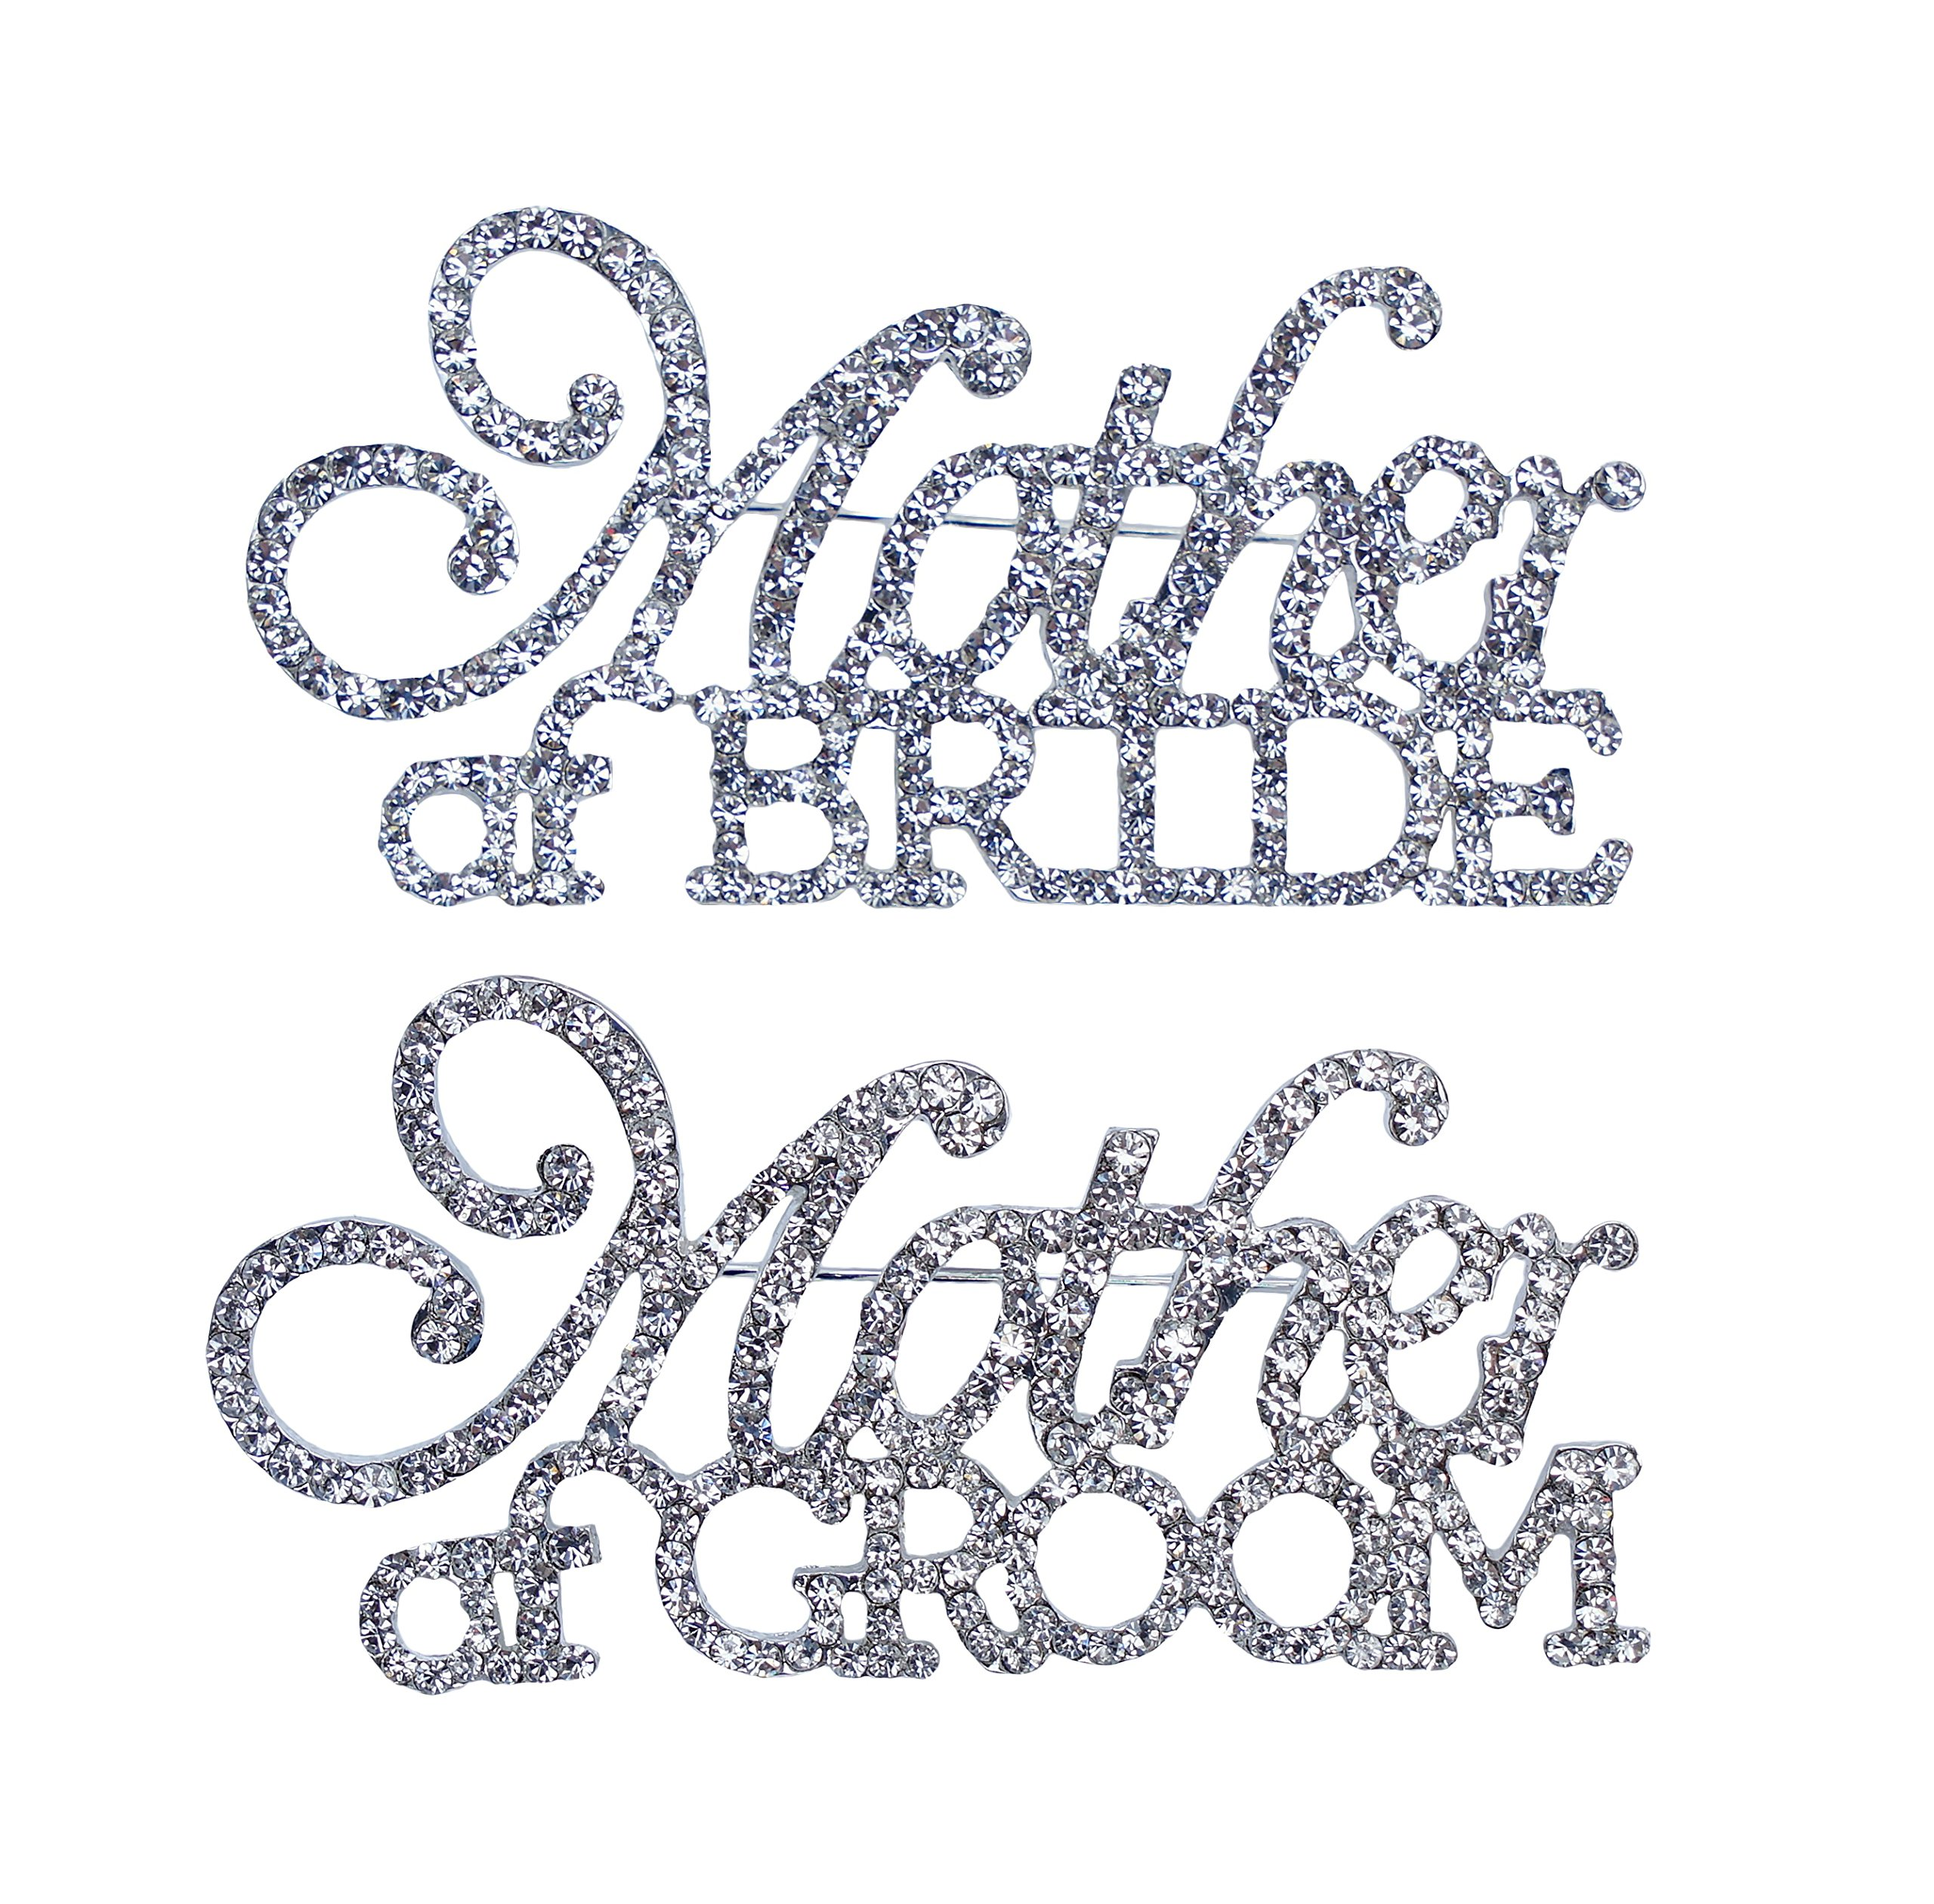 Unik Occasions Mother of the Bride & Mother of the Groom Rhinestone Pin Set in Silver